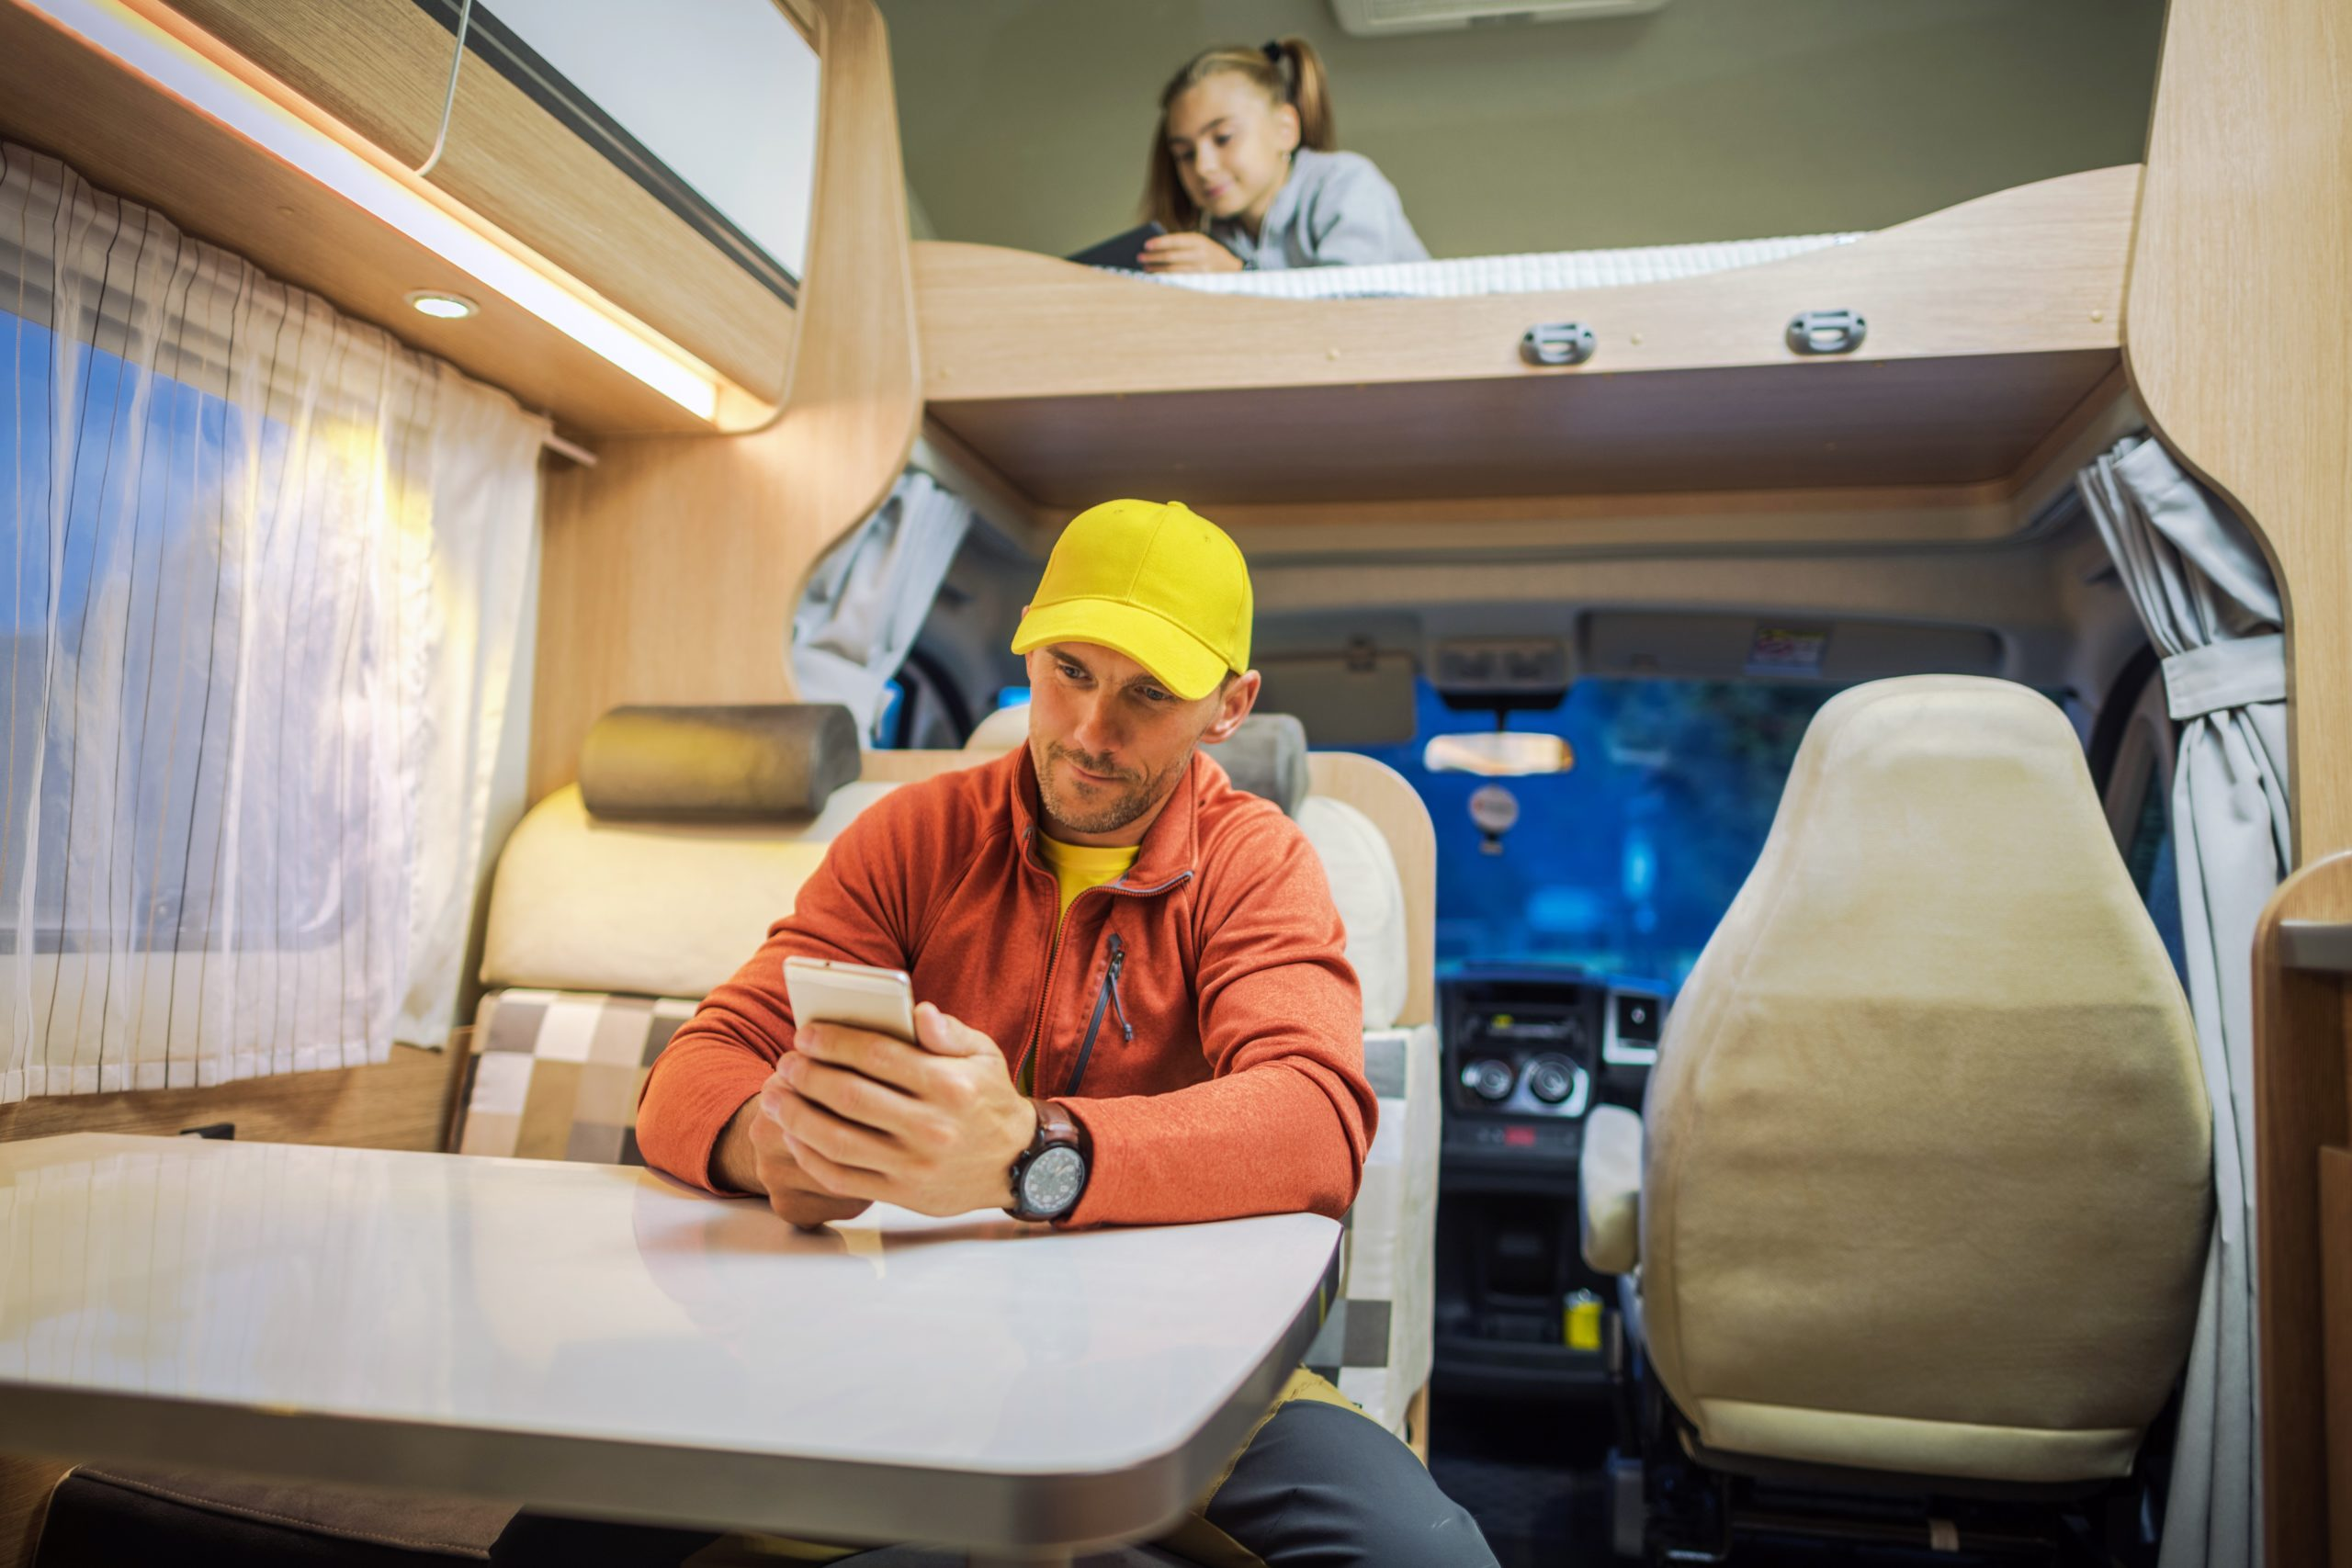 Family Spending Time Inside Camper Van RV Motorhome with Their Smartphones. Internet Connection While RVing Concept Photo. Campsite WiFi Signal.